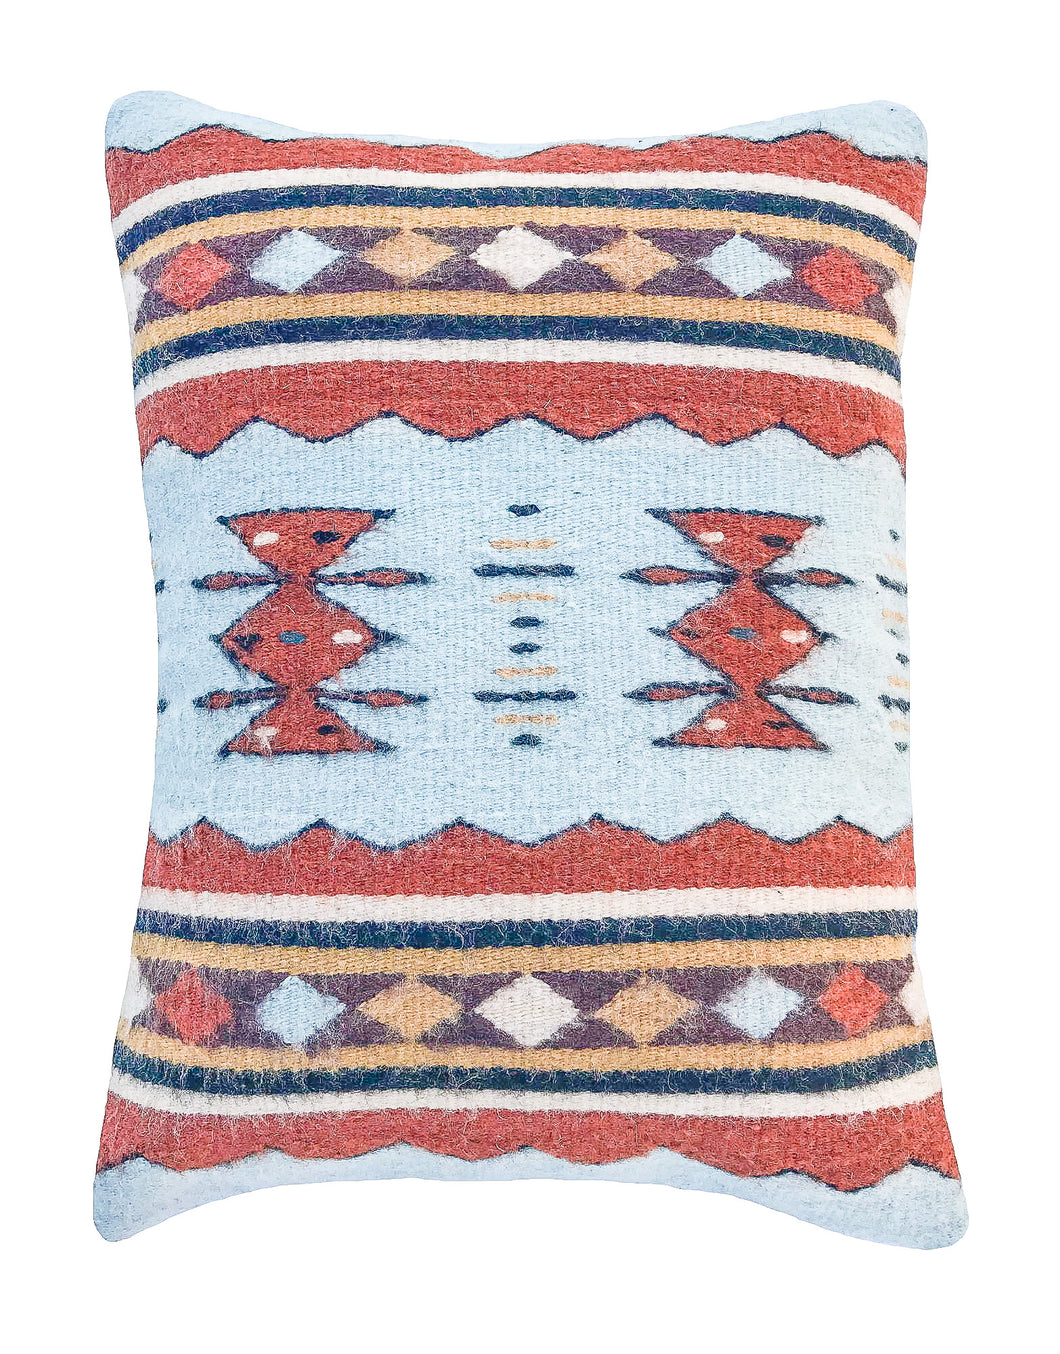 Handwoven Zapotec Indian Pillow - Meli's Waves Wool Oaxacan Textile